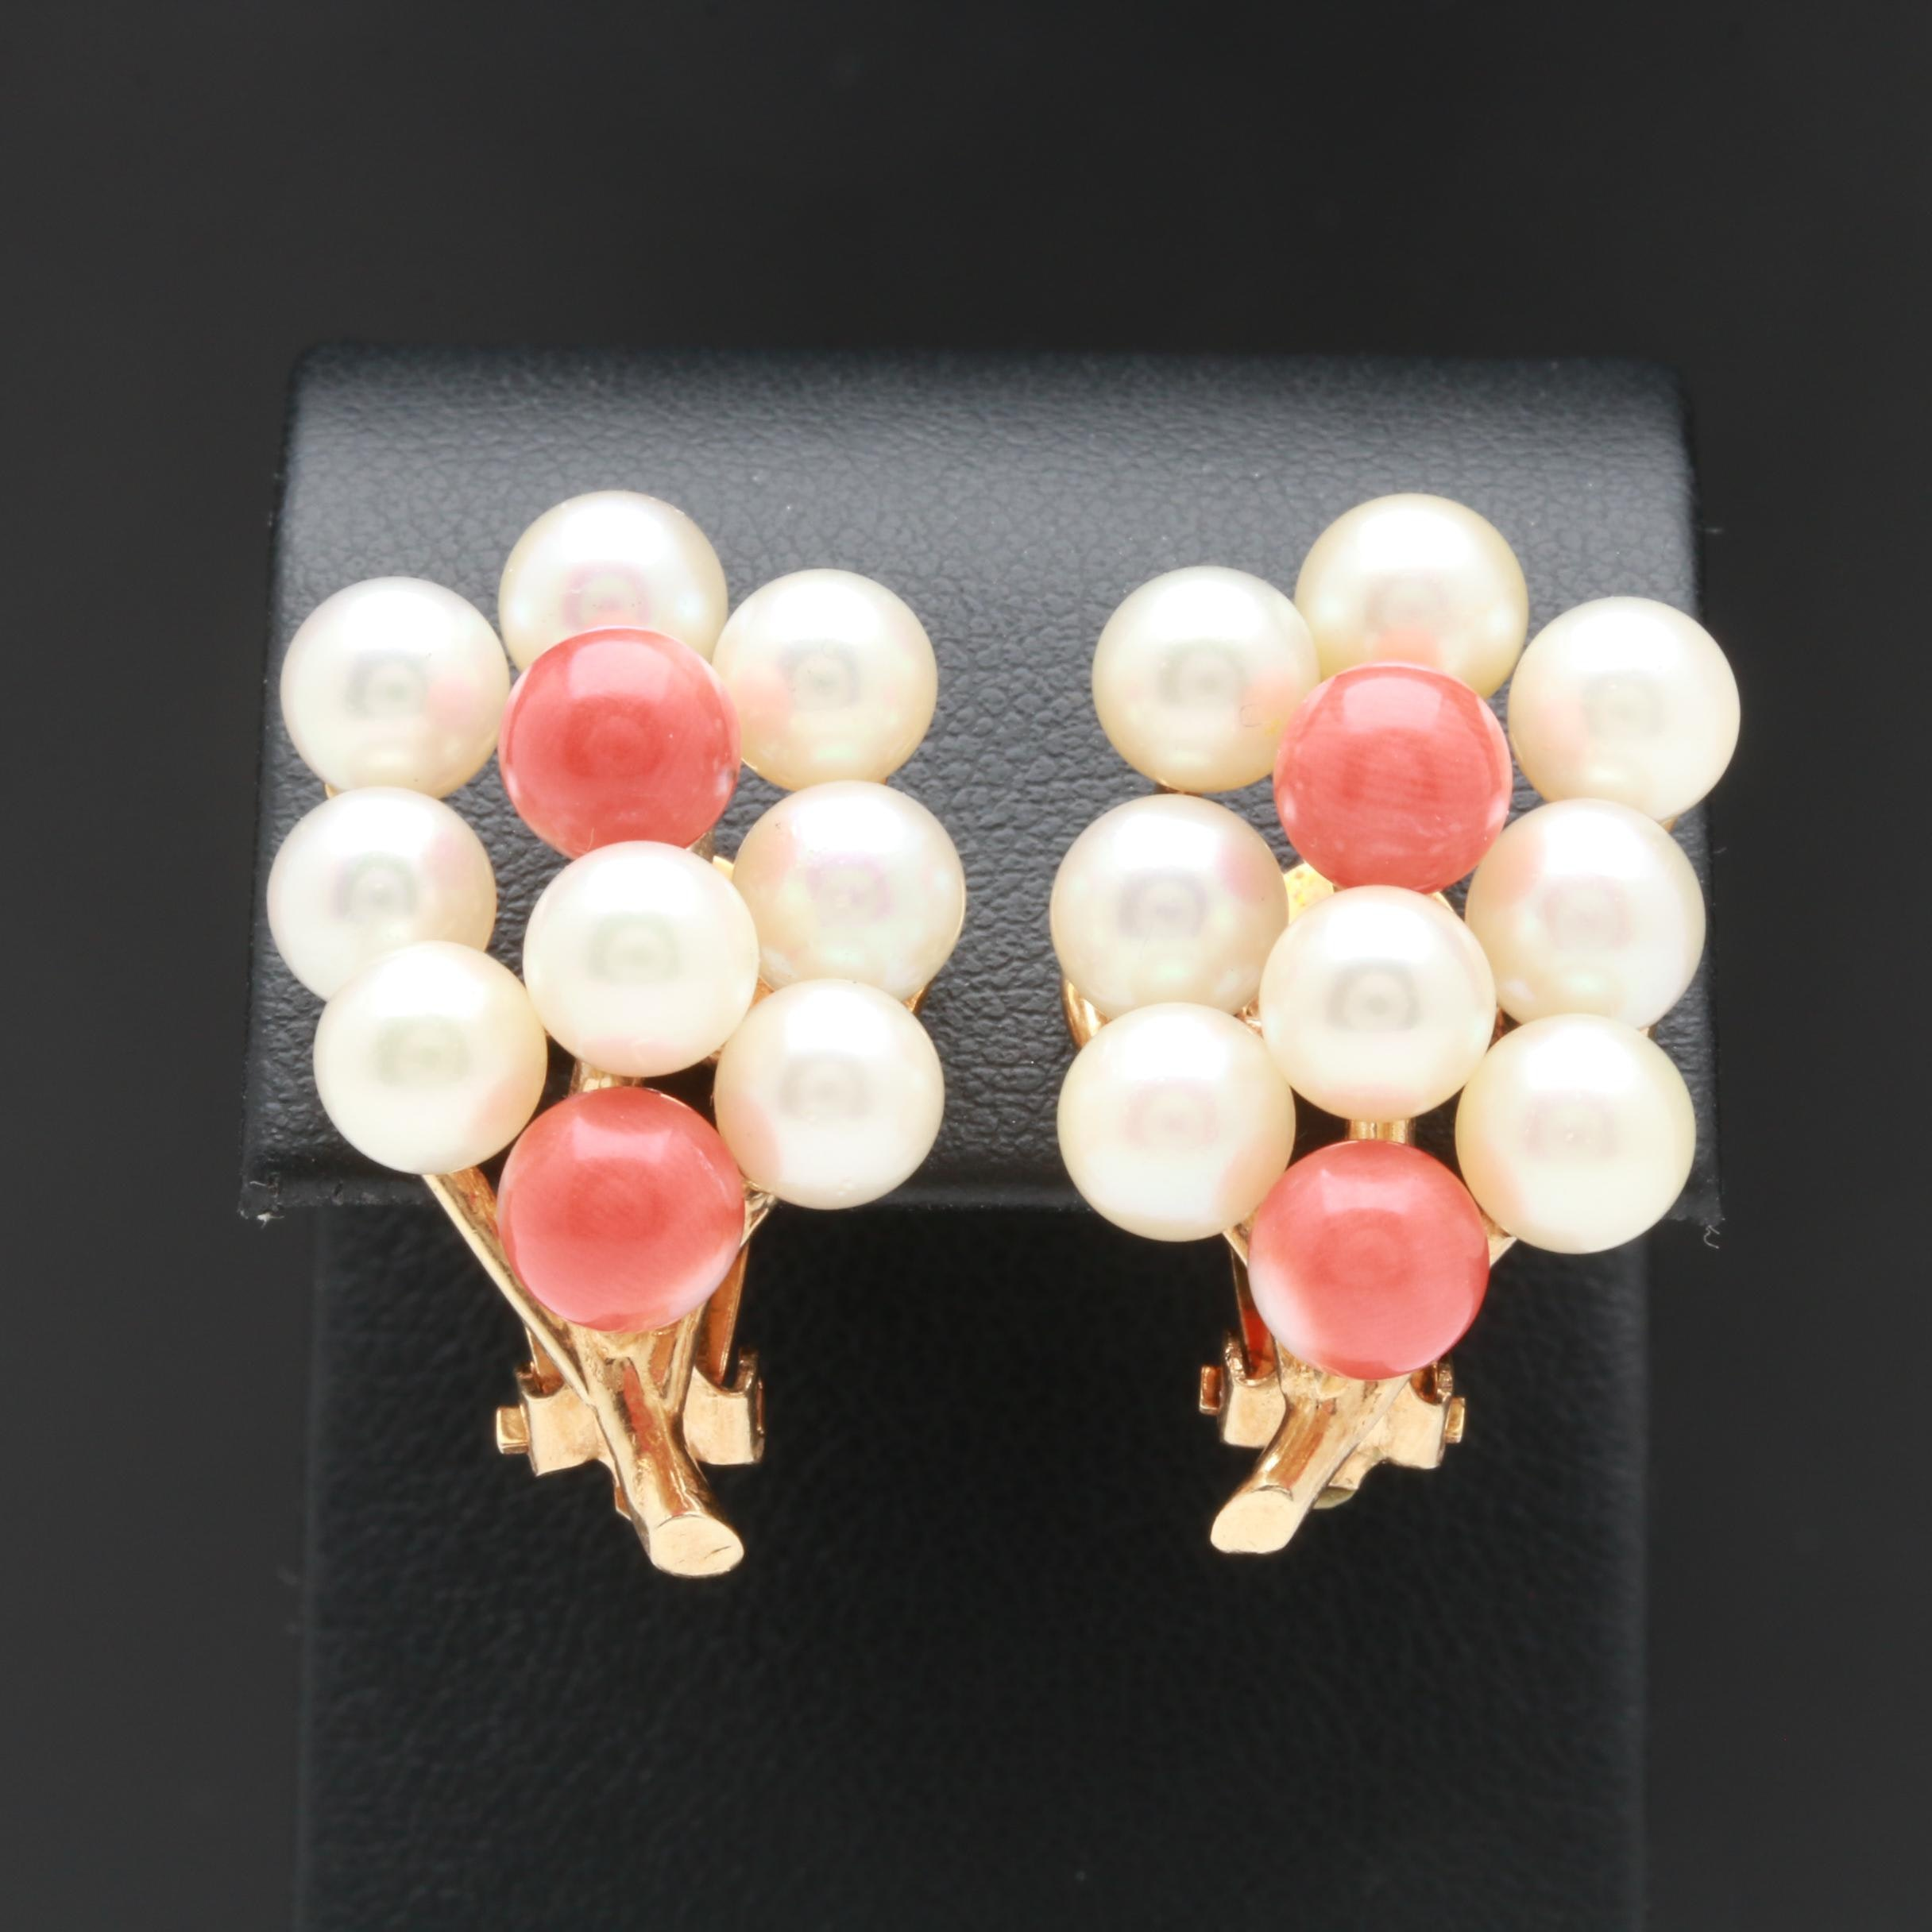 14K Yellow Gold Coral and Cultured Pearl Earrings